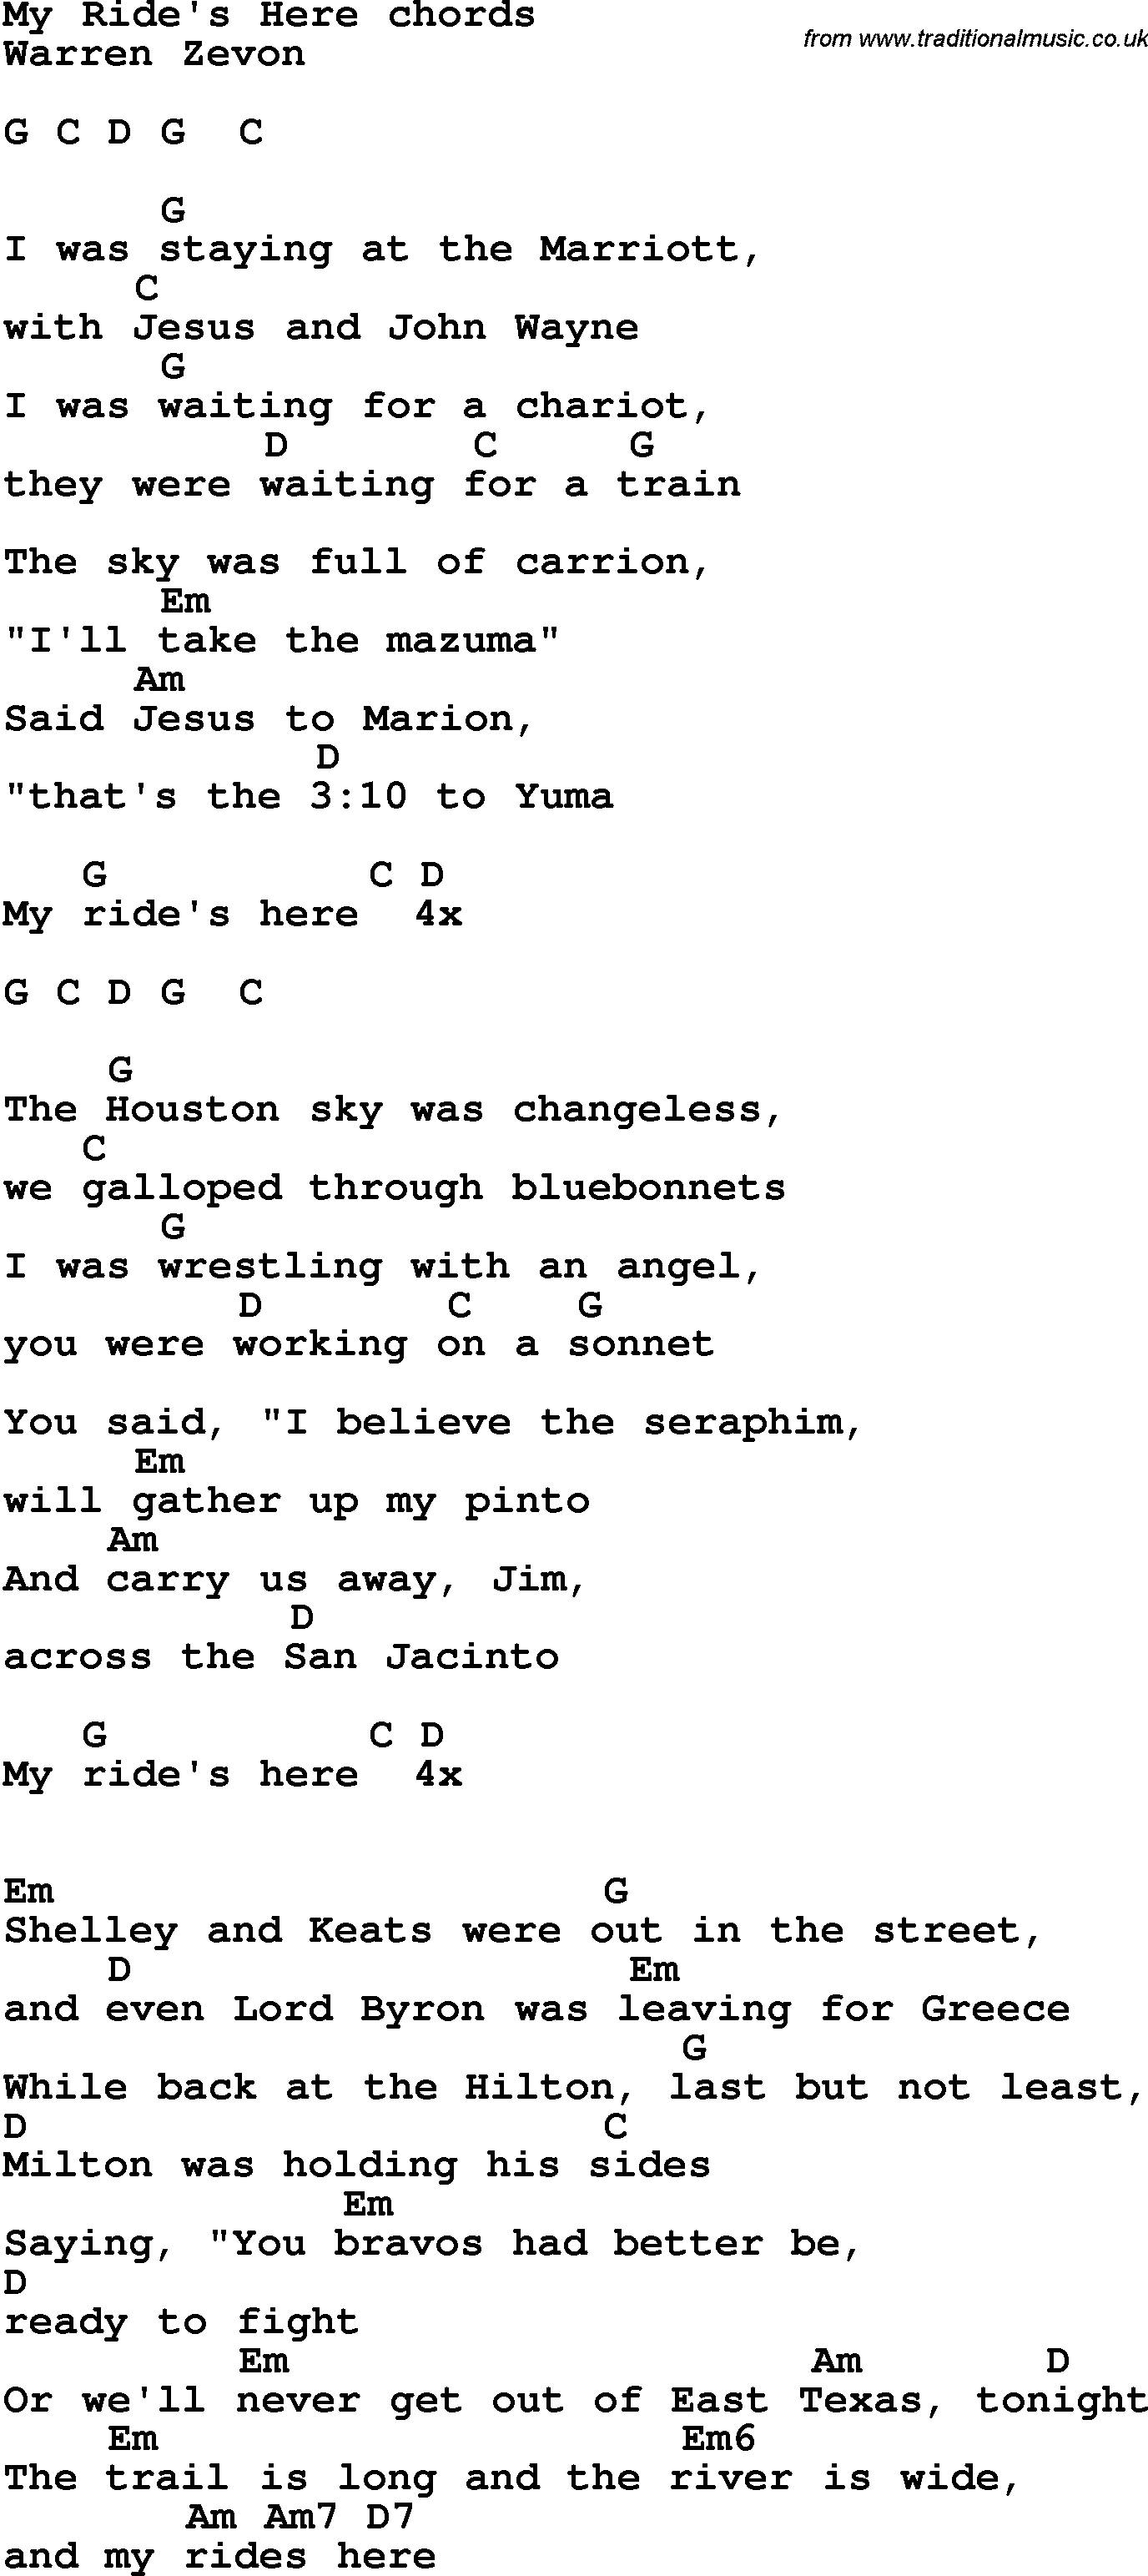 Song Lyrics With Guitar Chords For My Rides Here